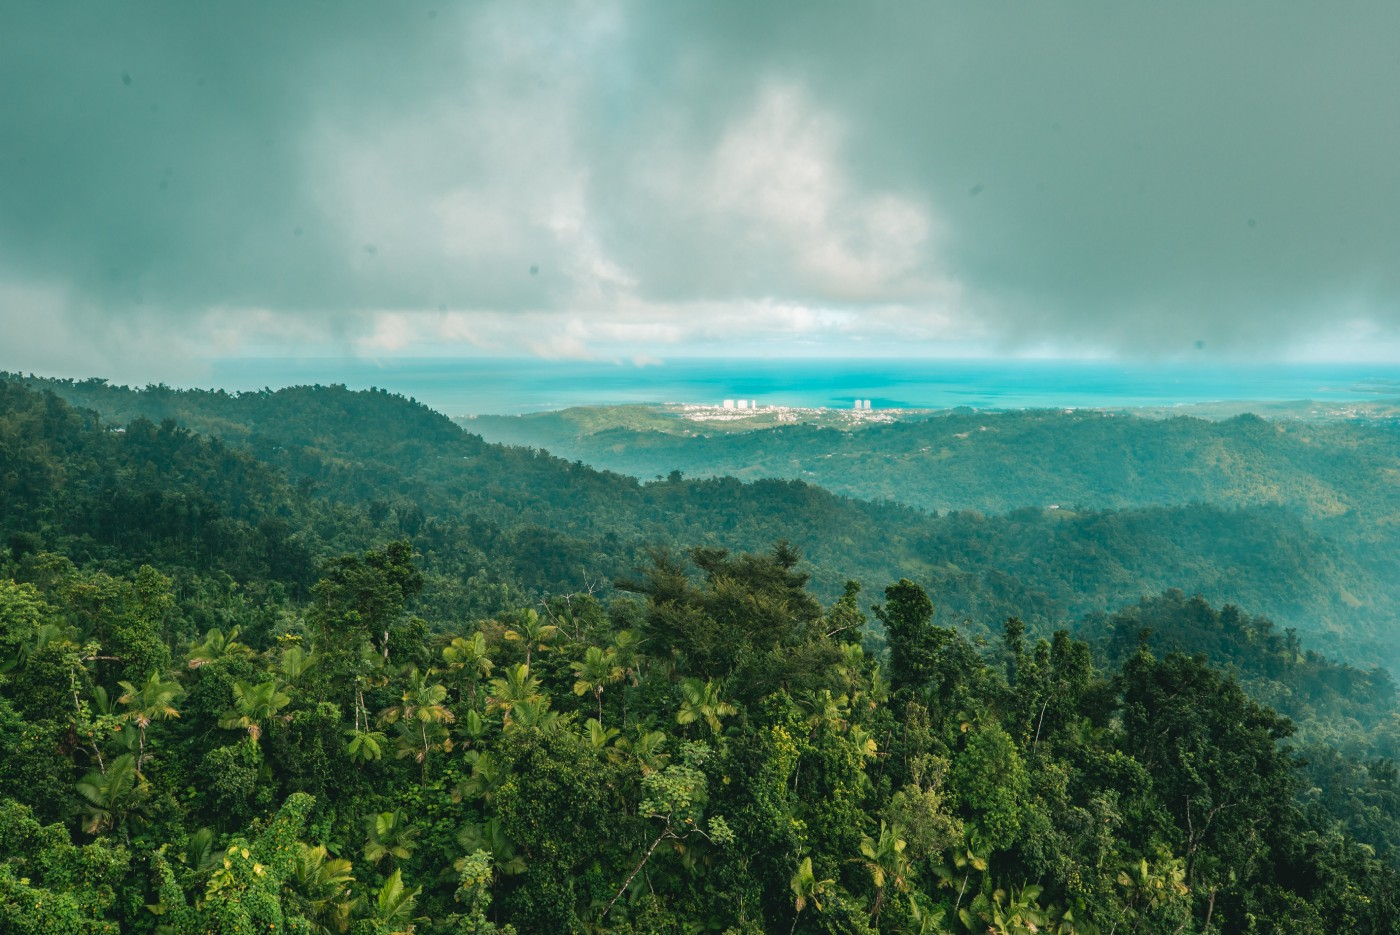 An wide shot of Puerto Rico's protected forests as clouds billow overhead and the sea sprawls out in the distance.